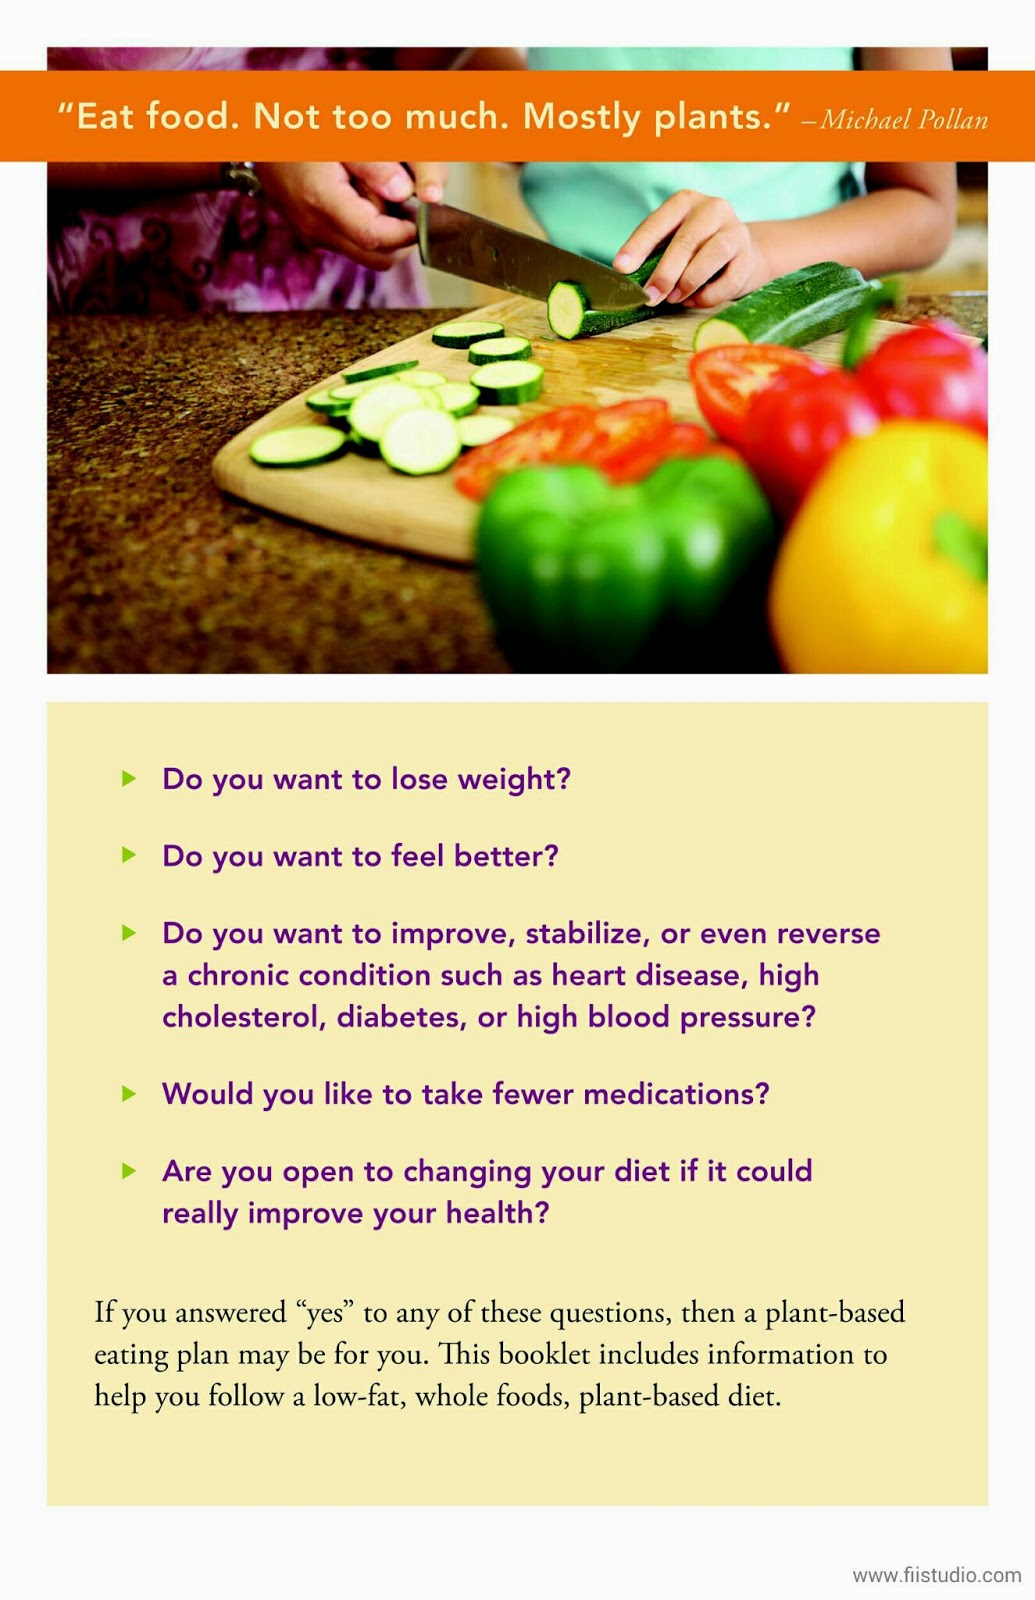 Do you lose weight with celiac disease